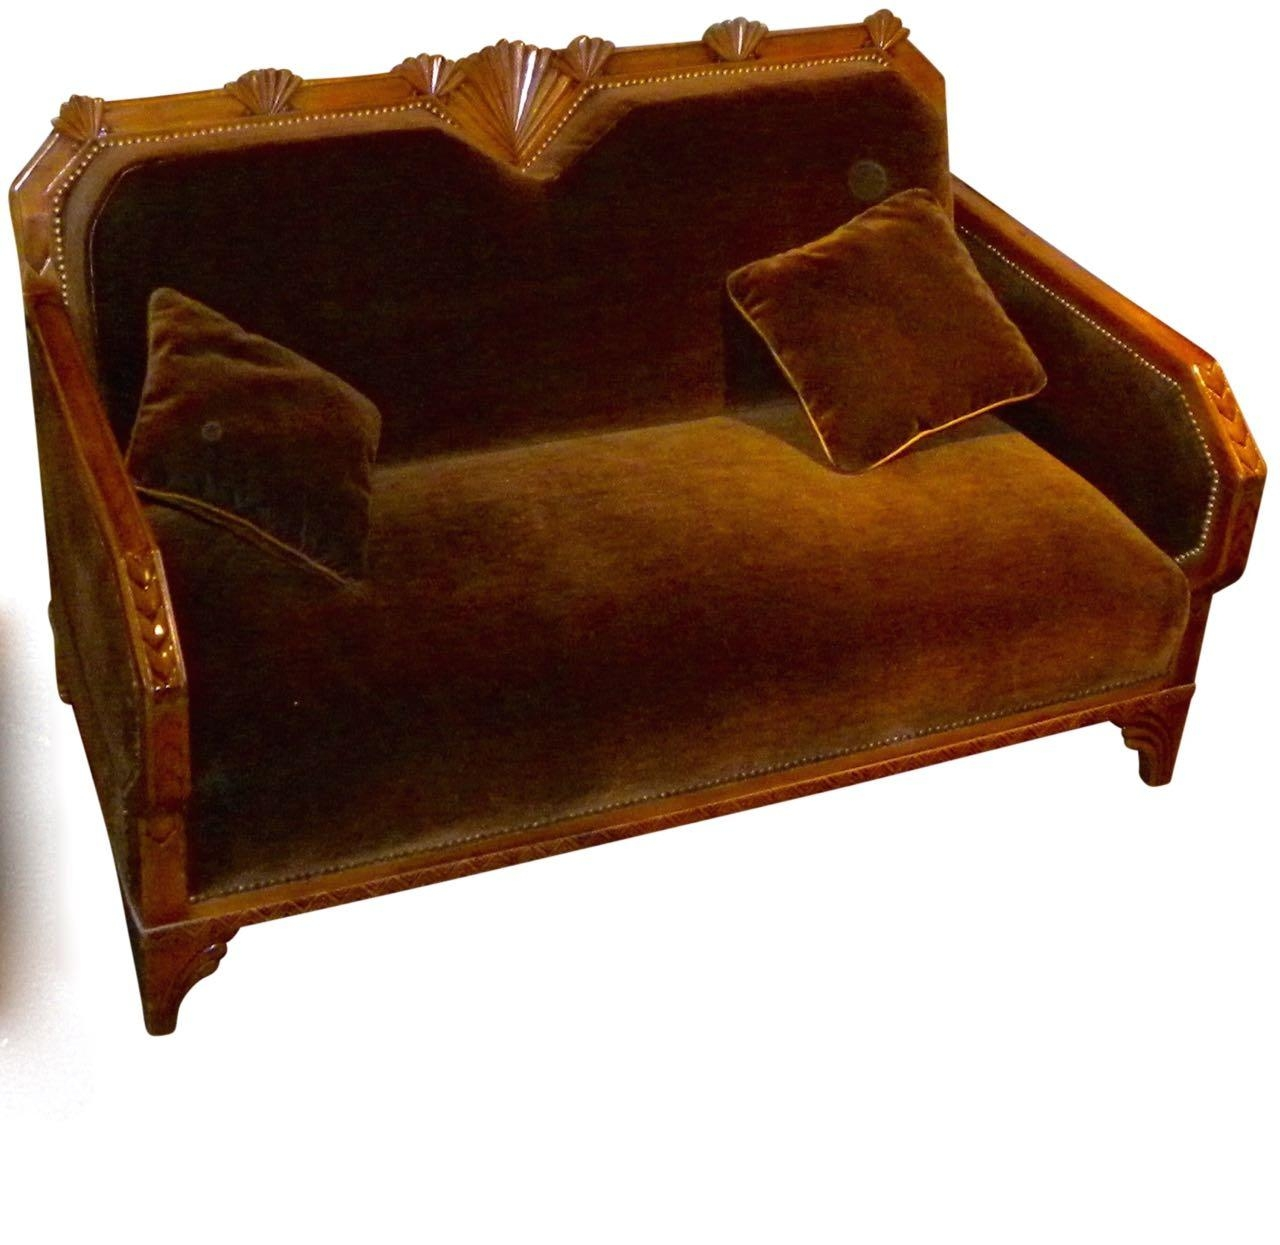 Art Deco Furniture For Sale | Seating Items | Art Deco Collection With Art Deco Sofa And Chairs (View 3 of 20)